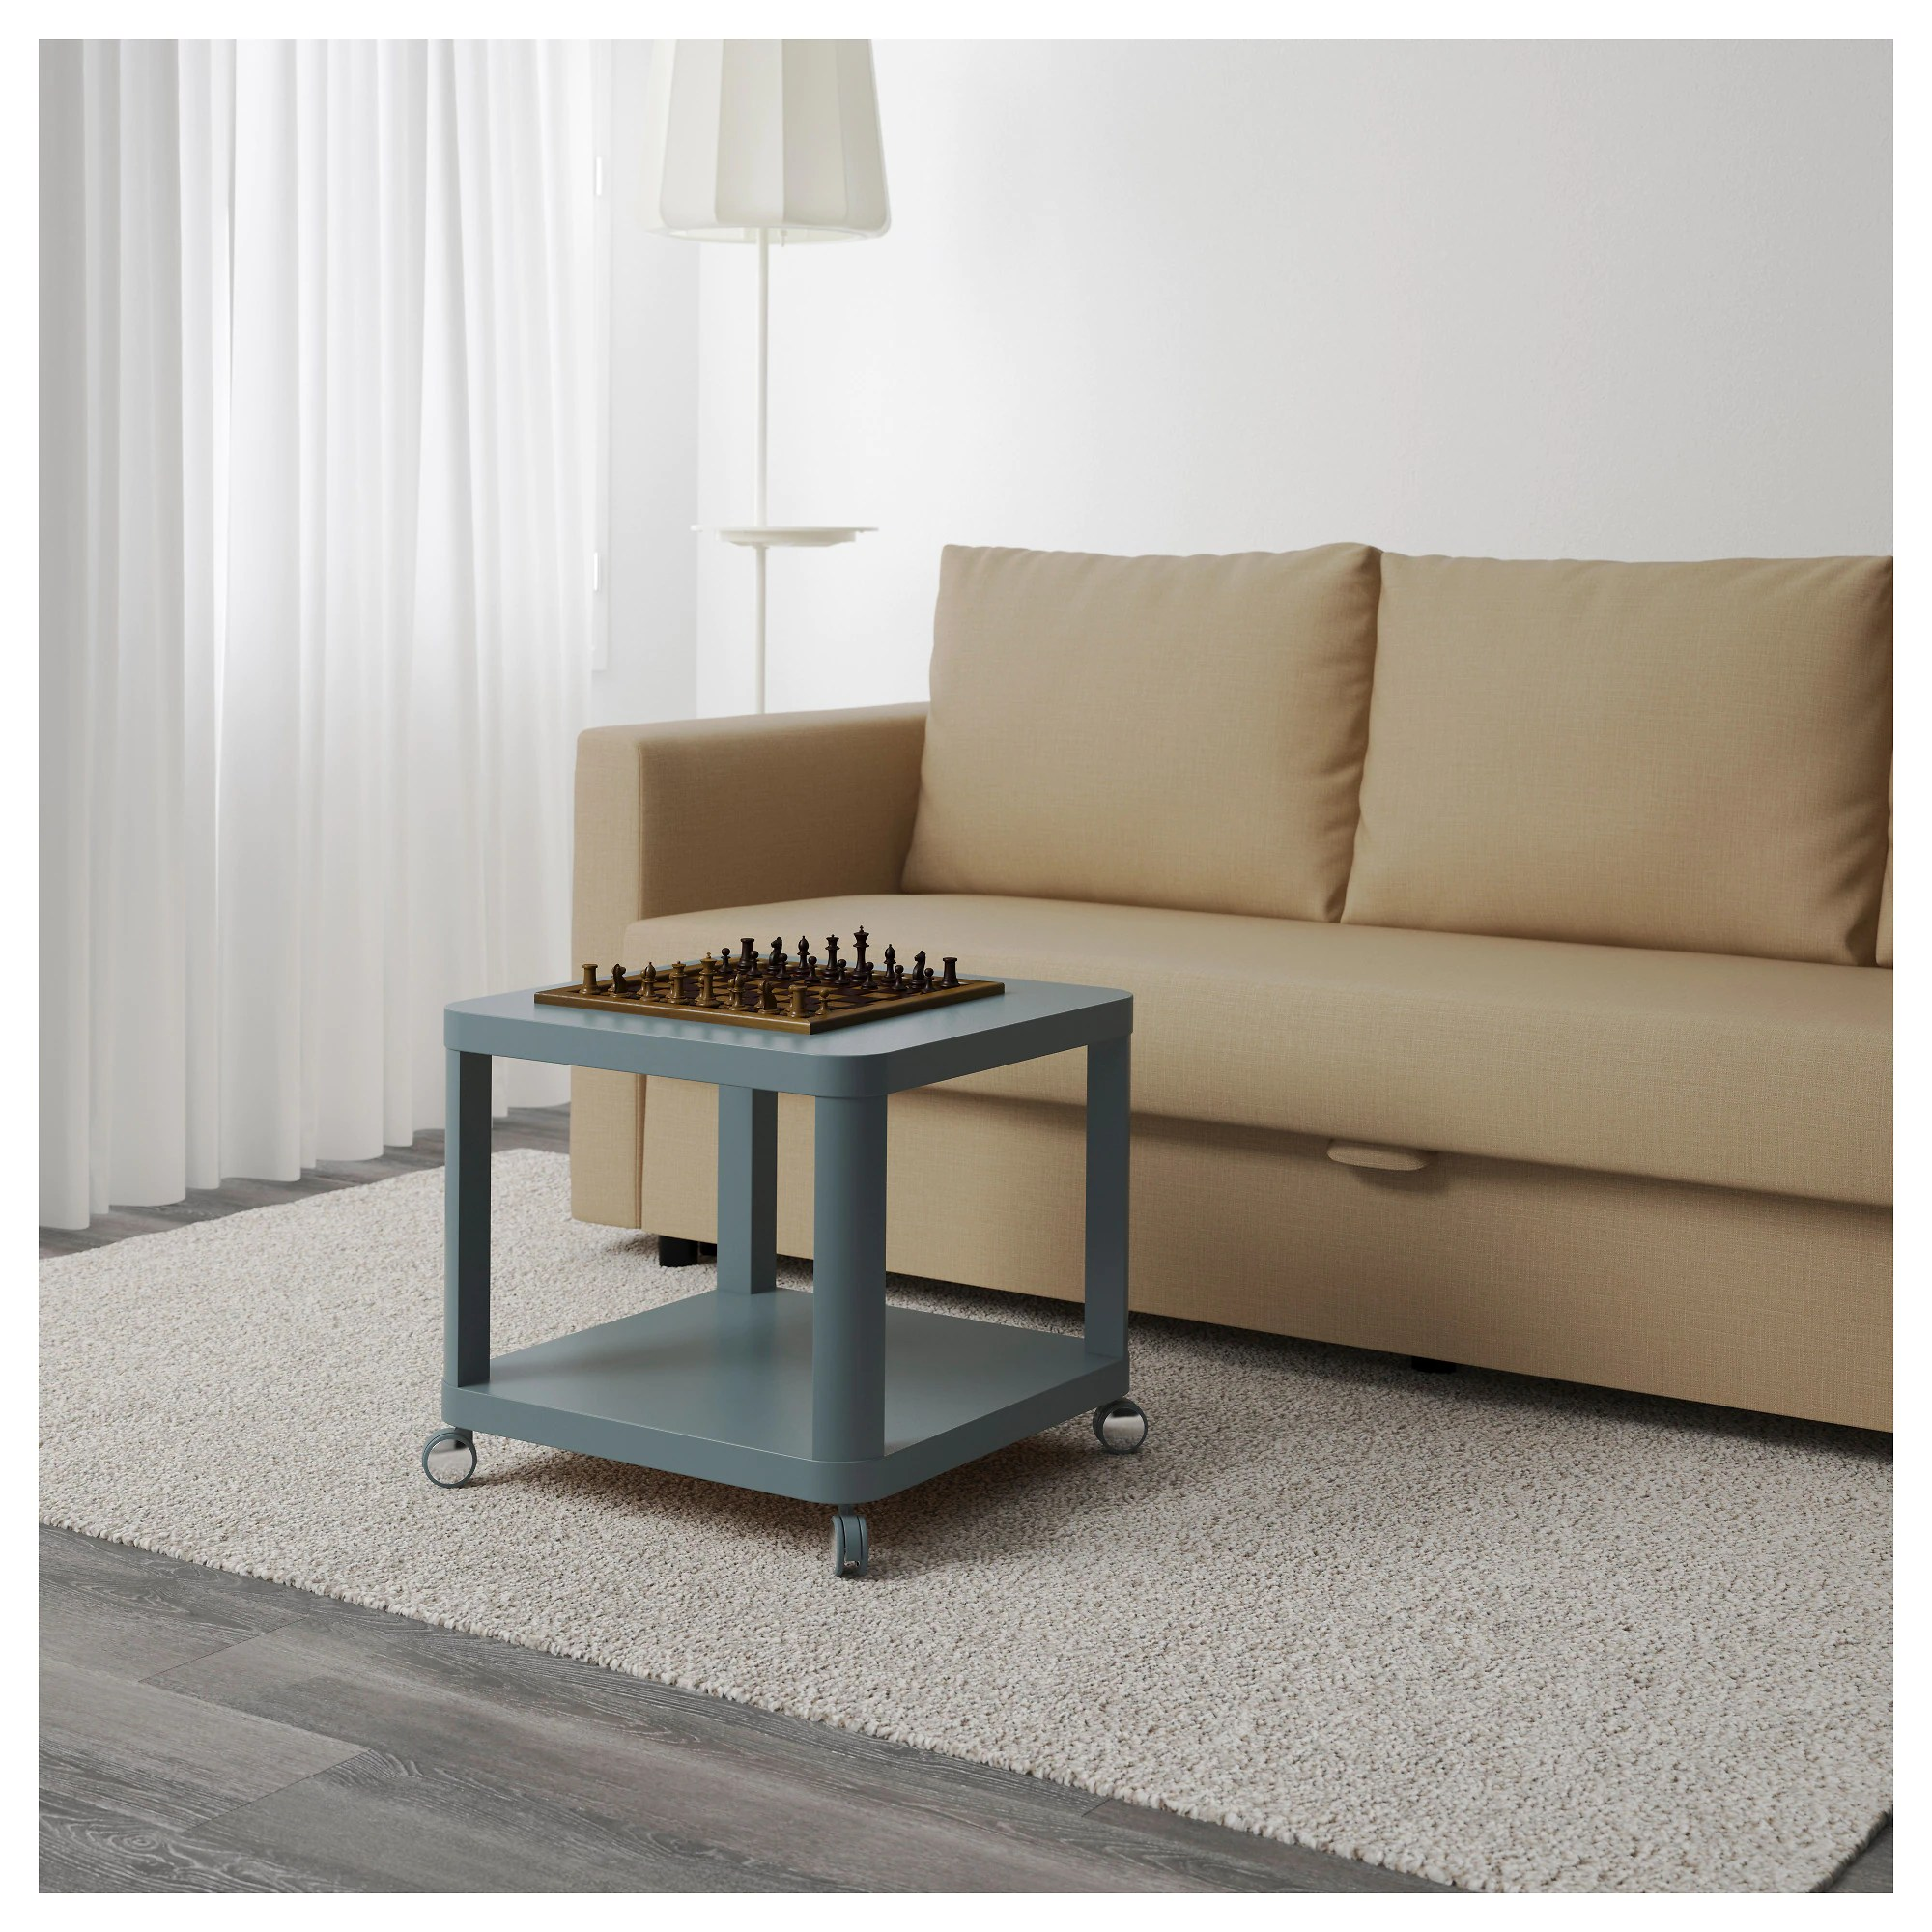 Table Basse D Appoint Ikea Ikea Tingby Table D Appoint à Roulettes Turquoise 50x50cm